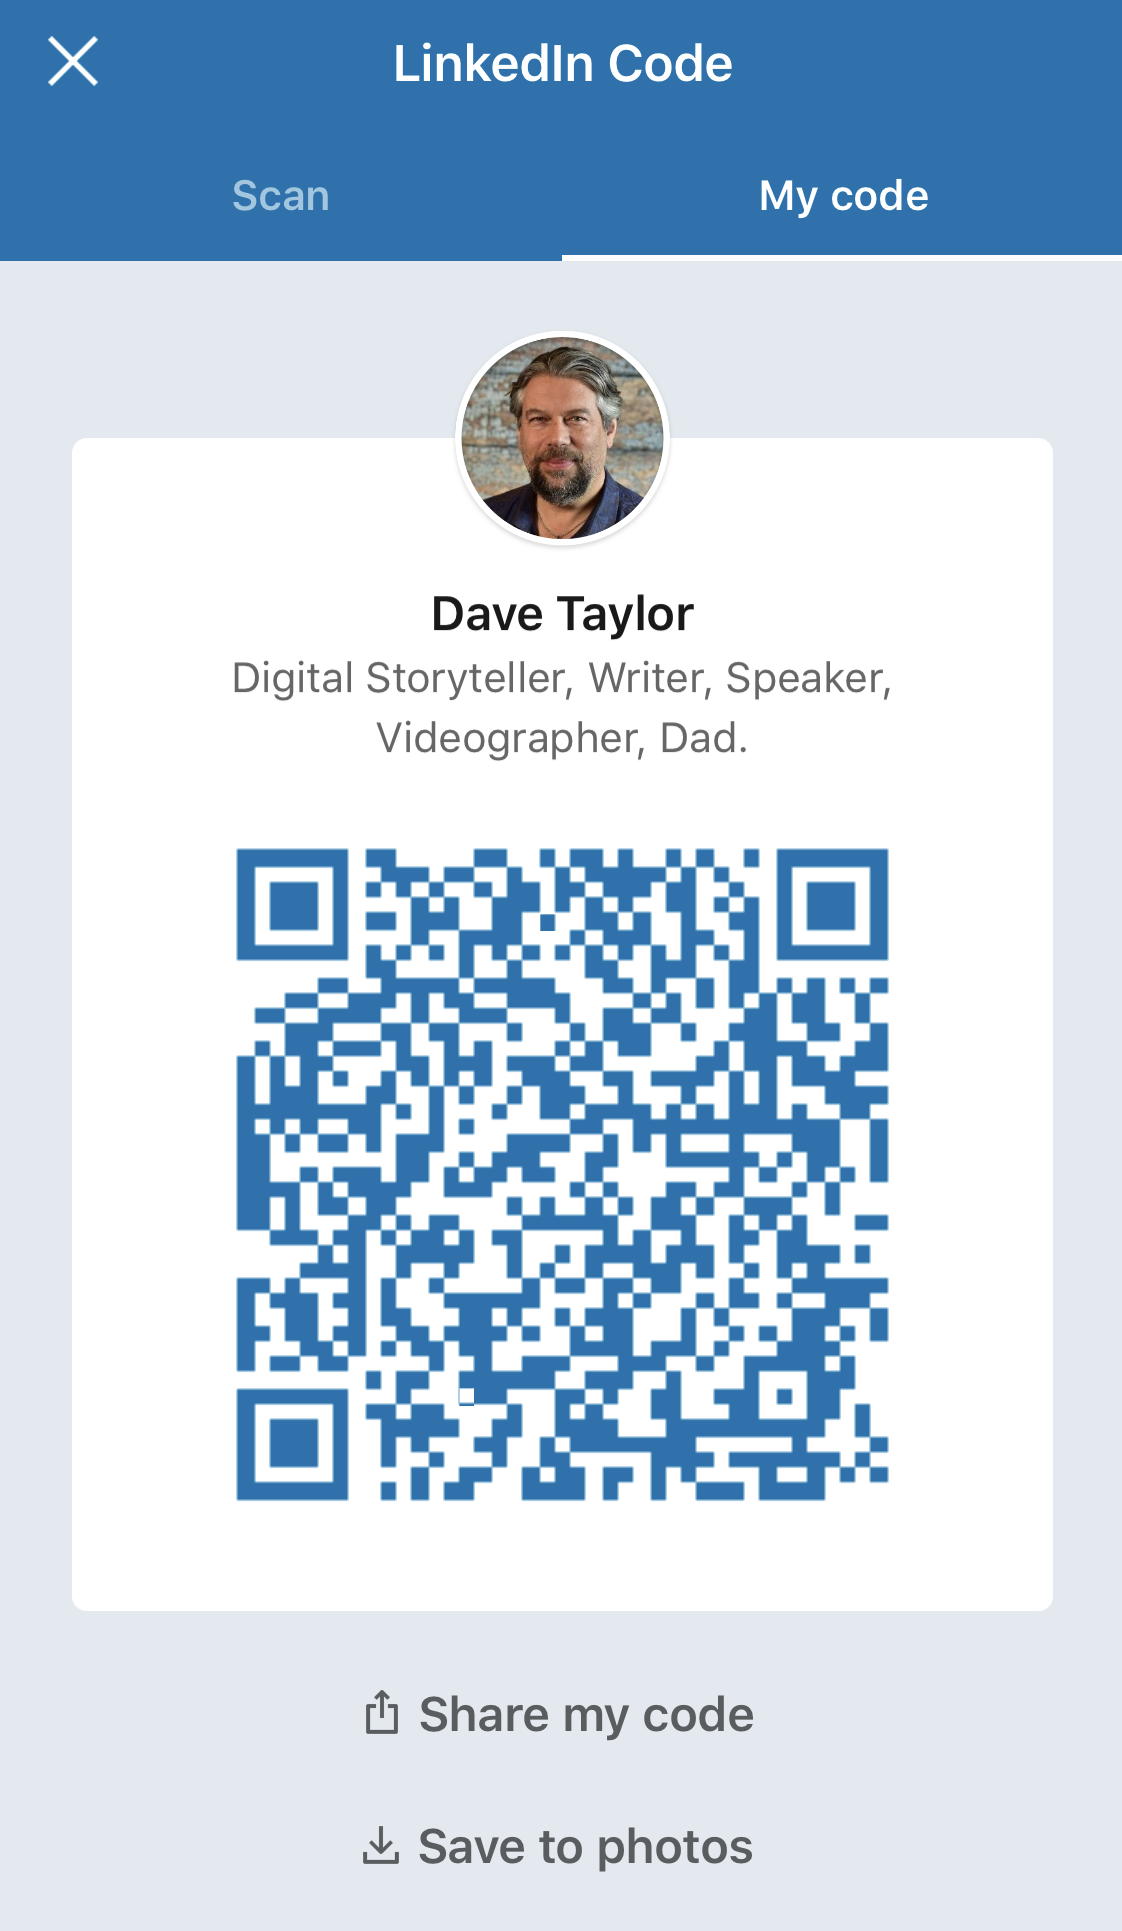 linkedin code qr code how to make generate